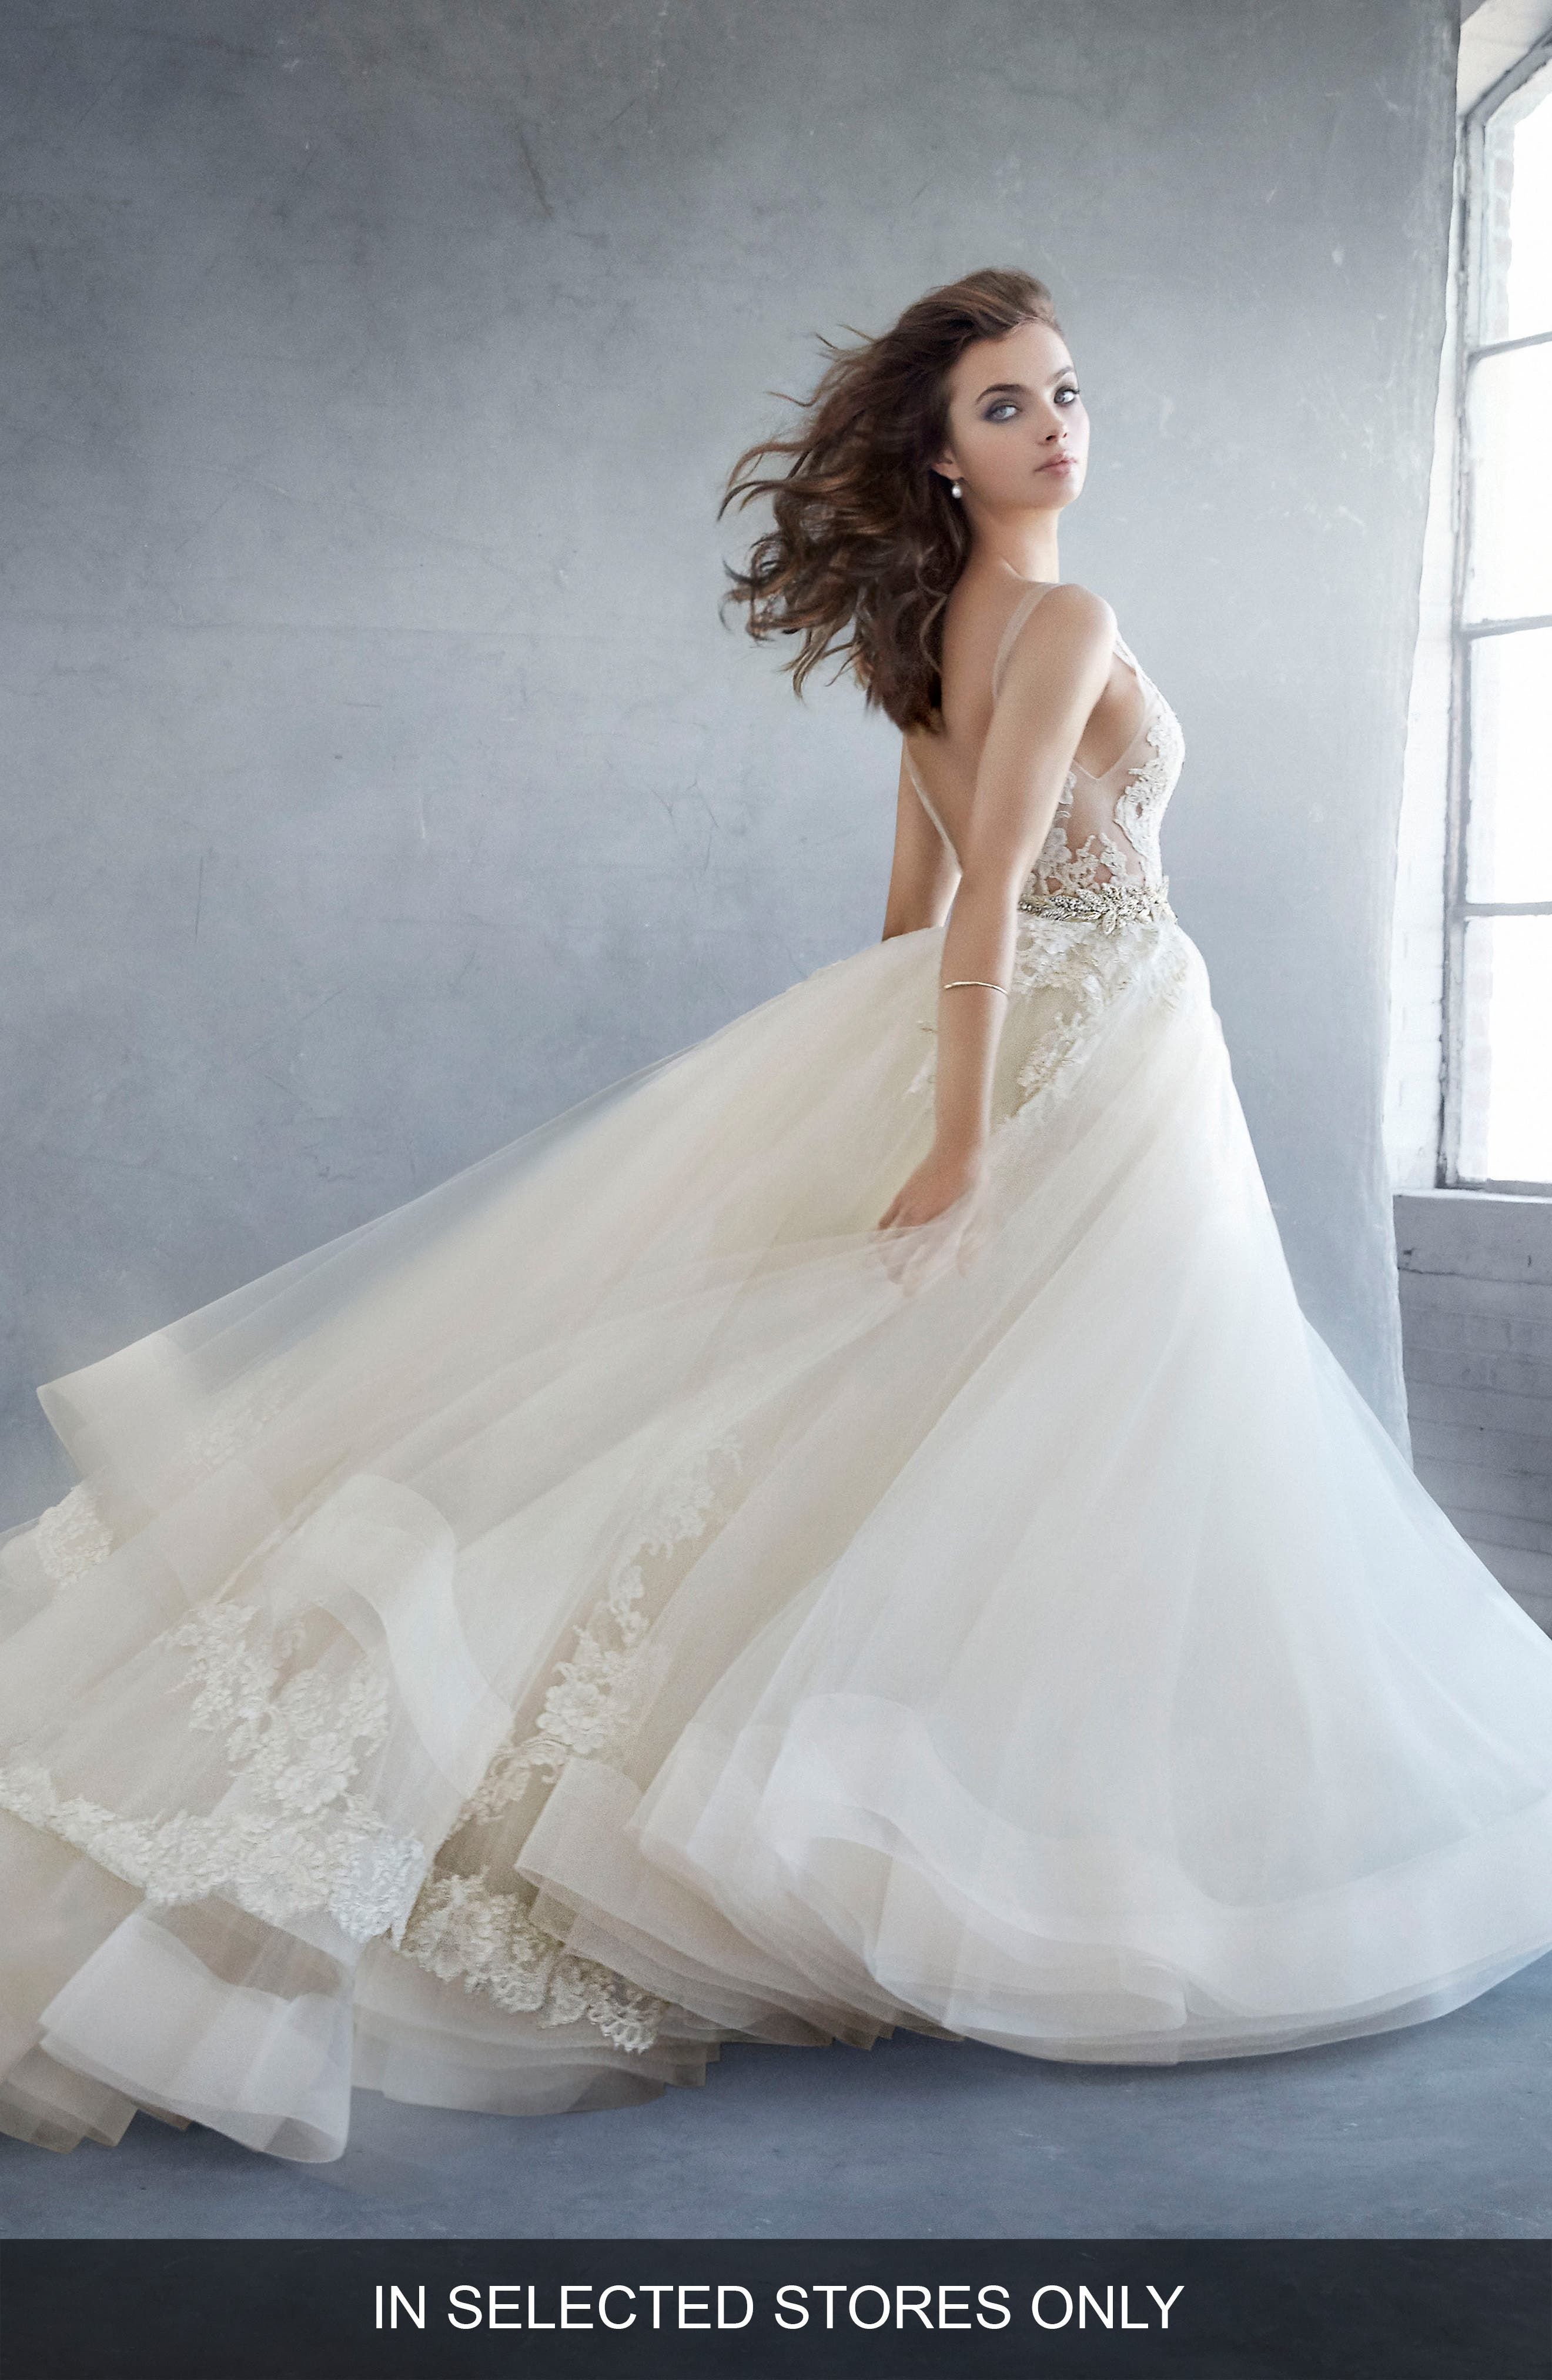 Beaded Lace & Tulle Ballgown,                             Main thumbnail 1, color,                             IVORY/ GOLD/ CHAMPAGNE